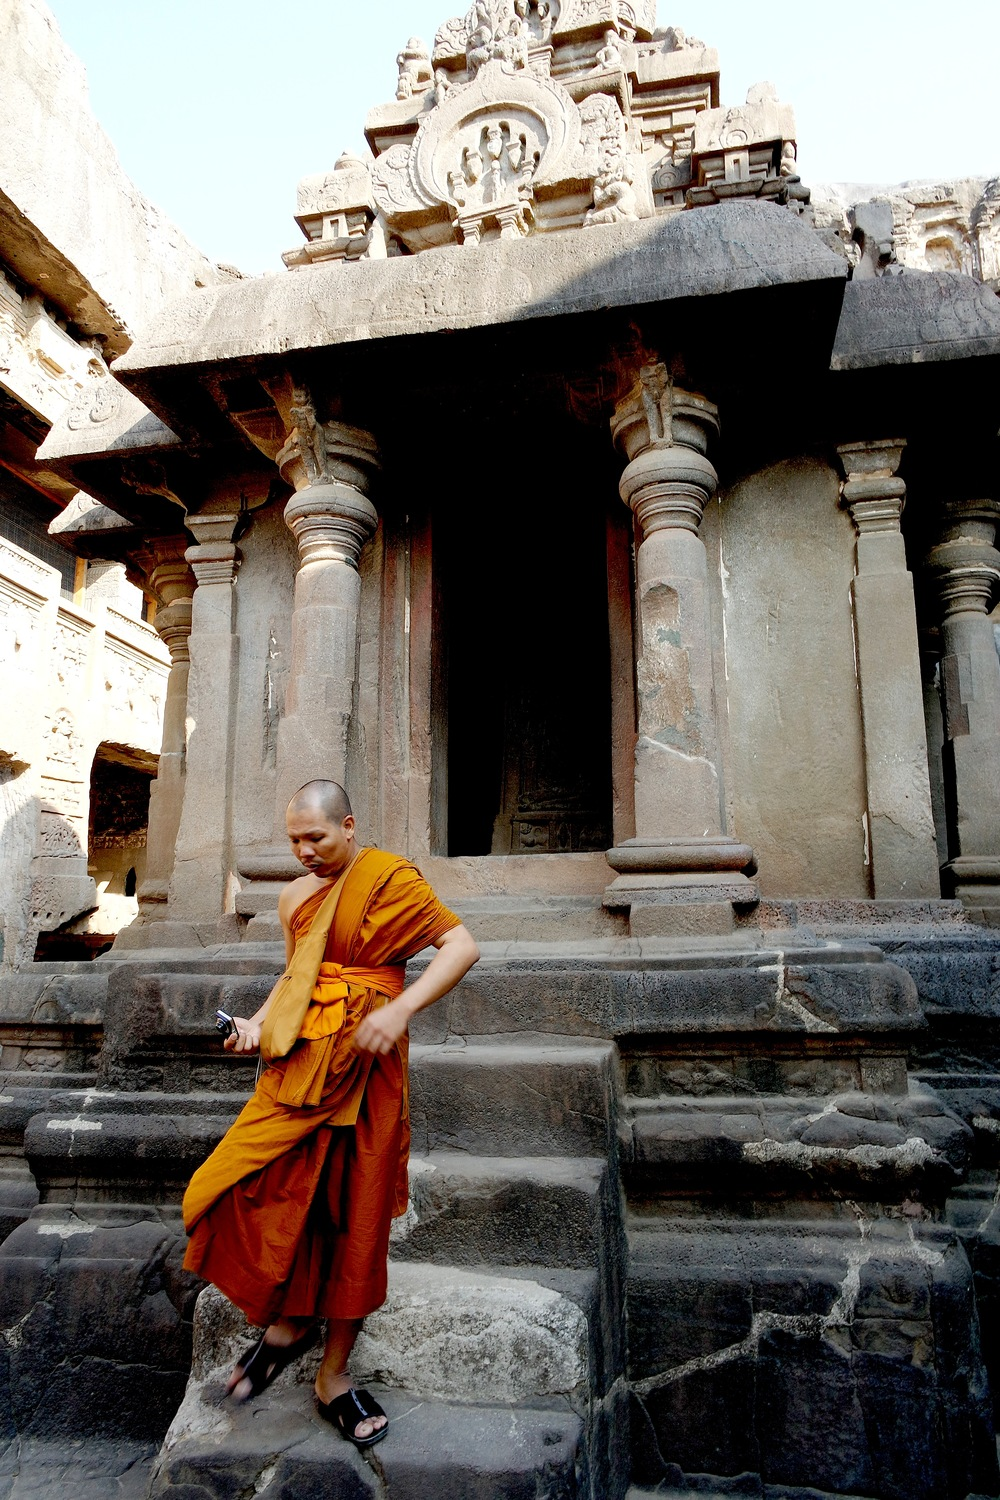 A Buddhist monk in front of the entrance to a shrine at Cave 32